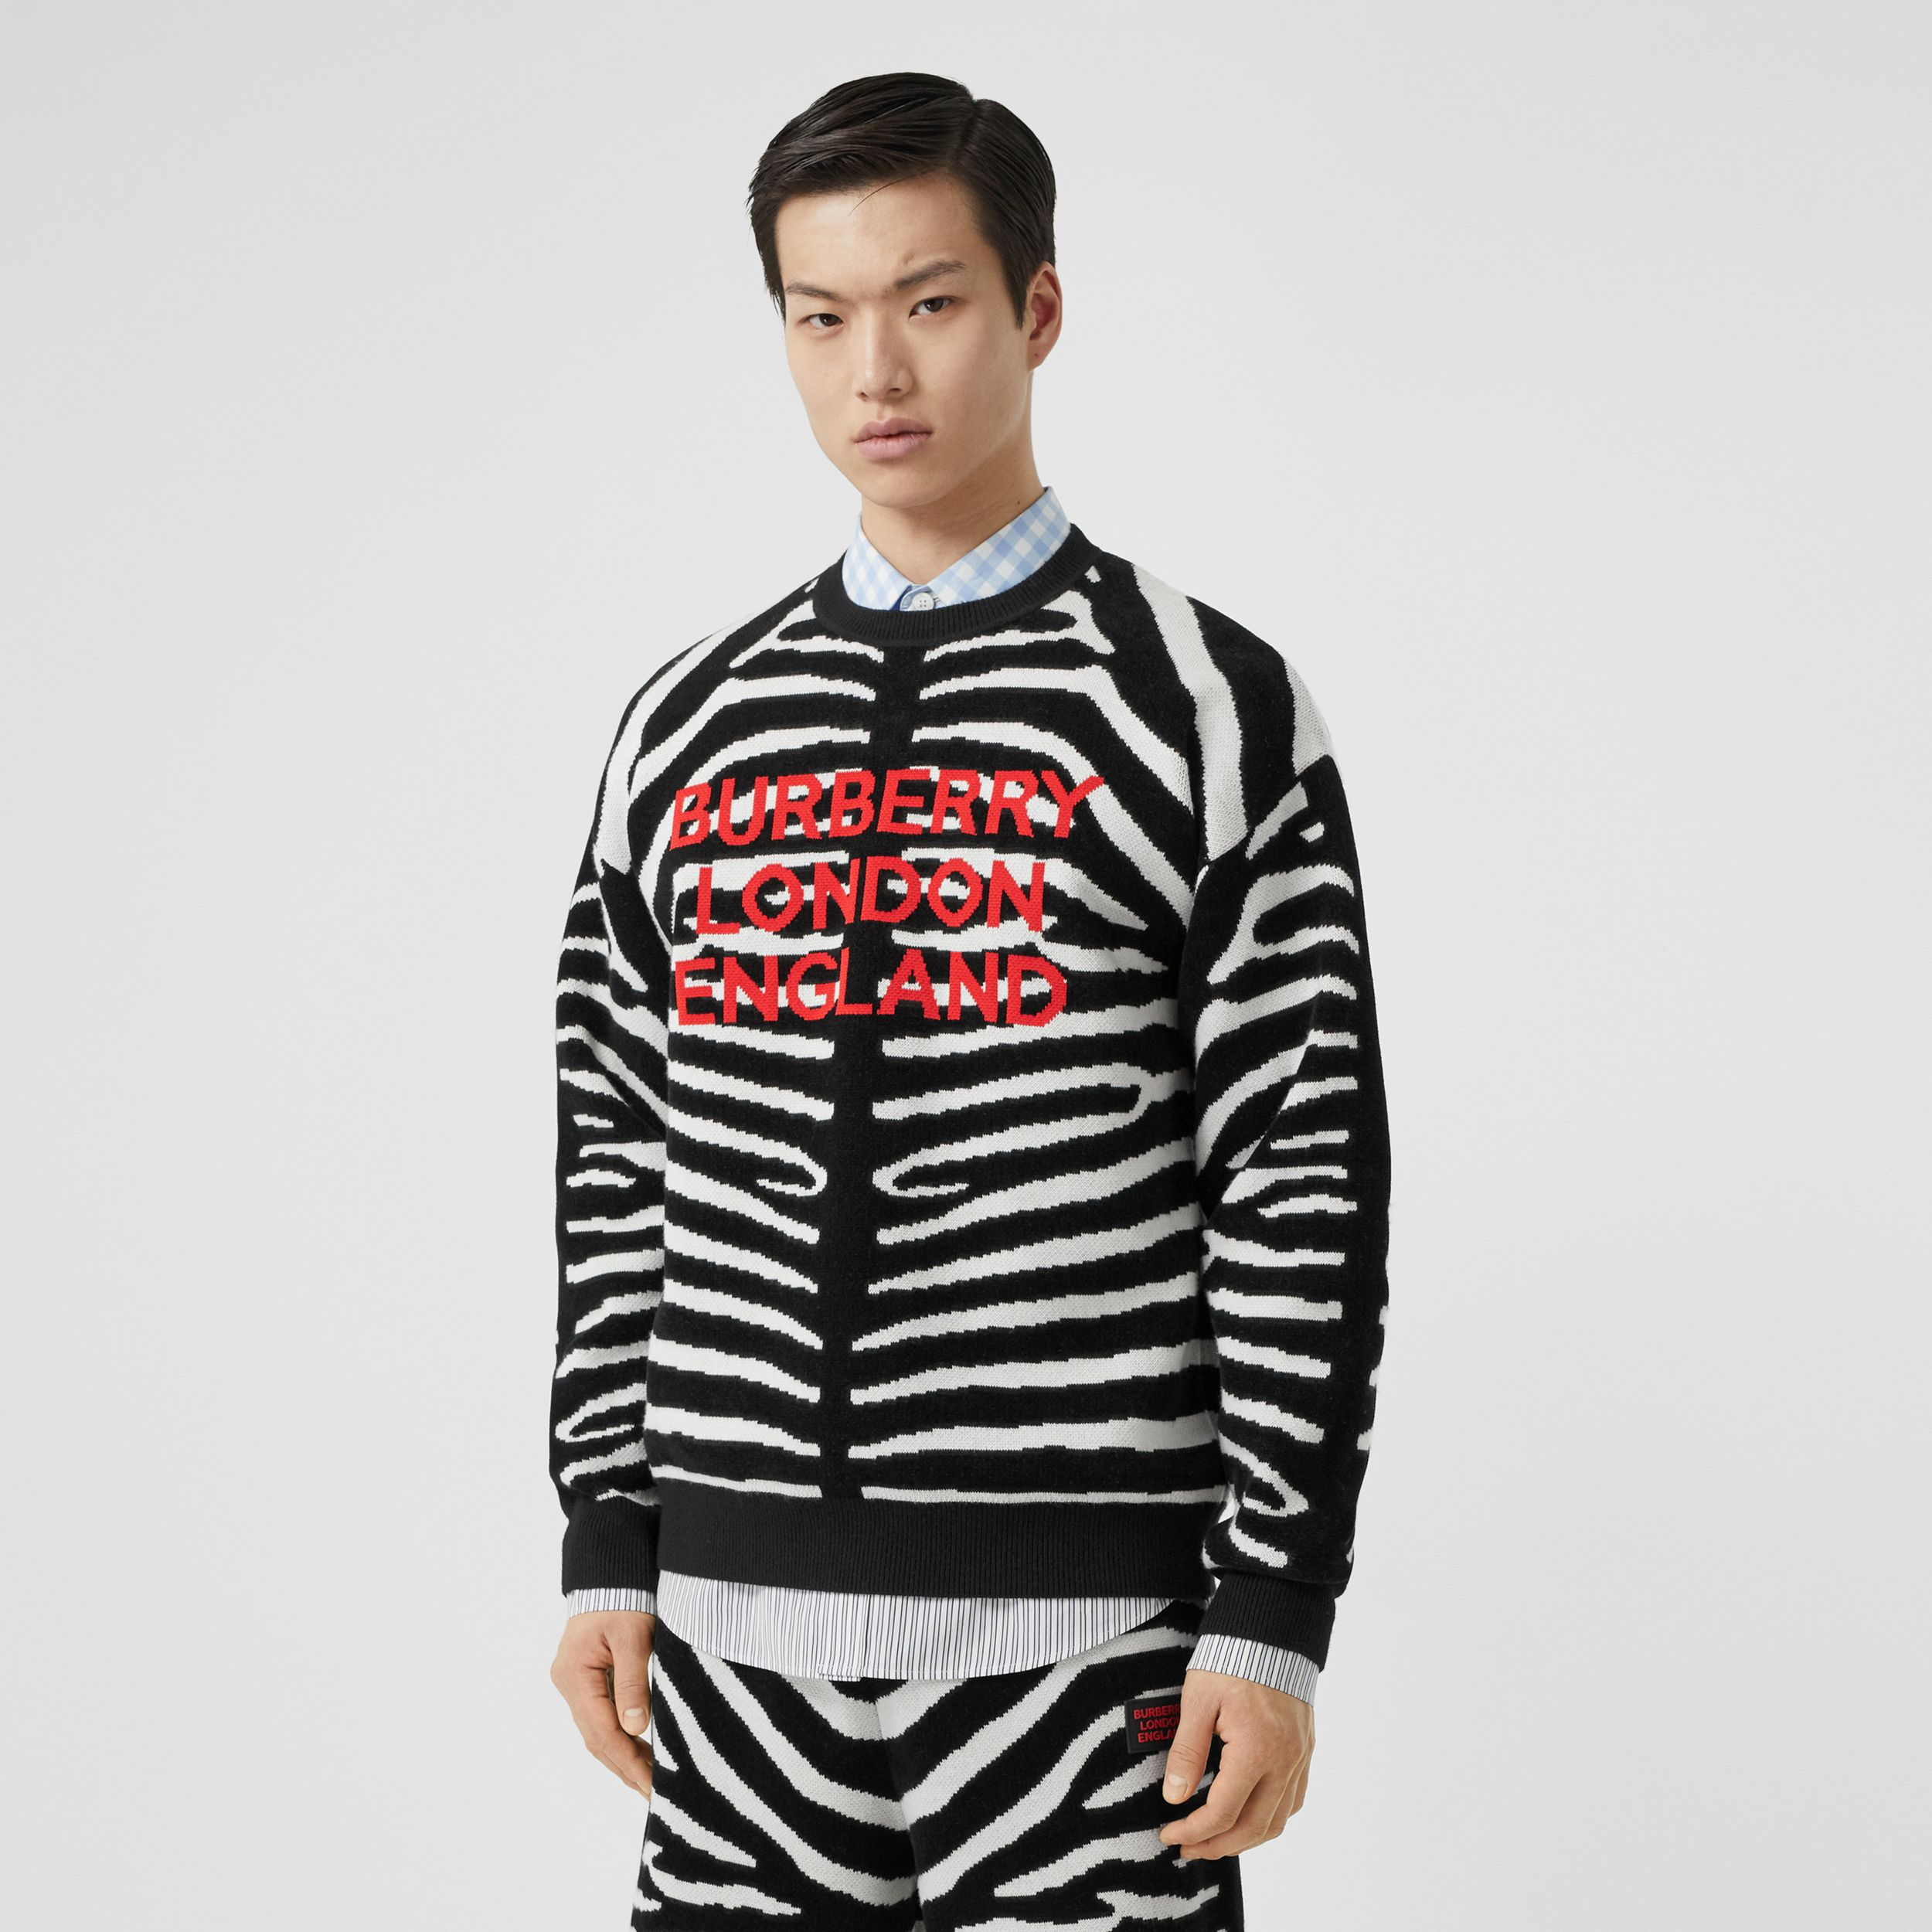 Zebra and Logo Wool Blend Jacquard Sweater in Black | Burberry United States - 1